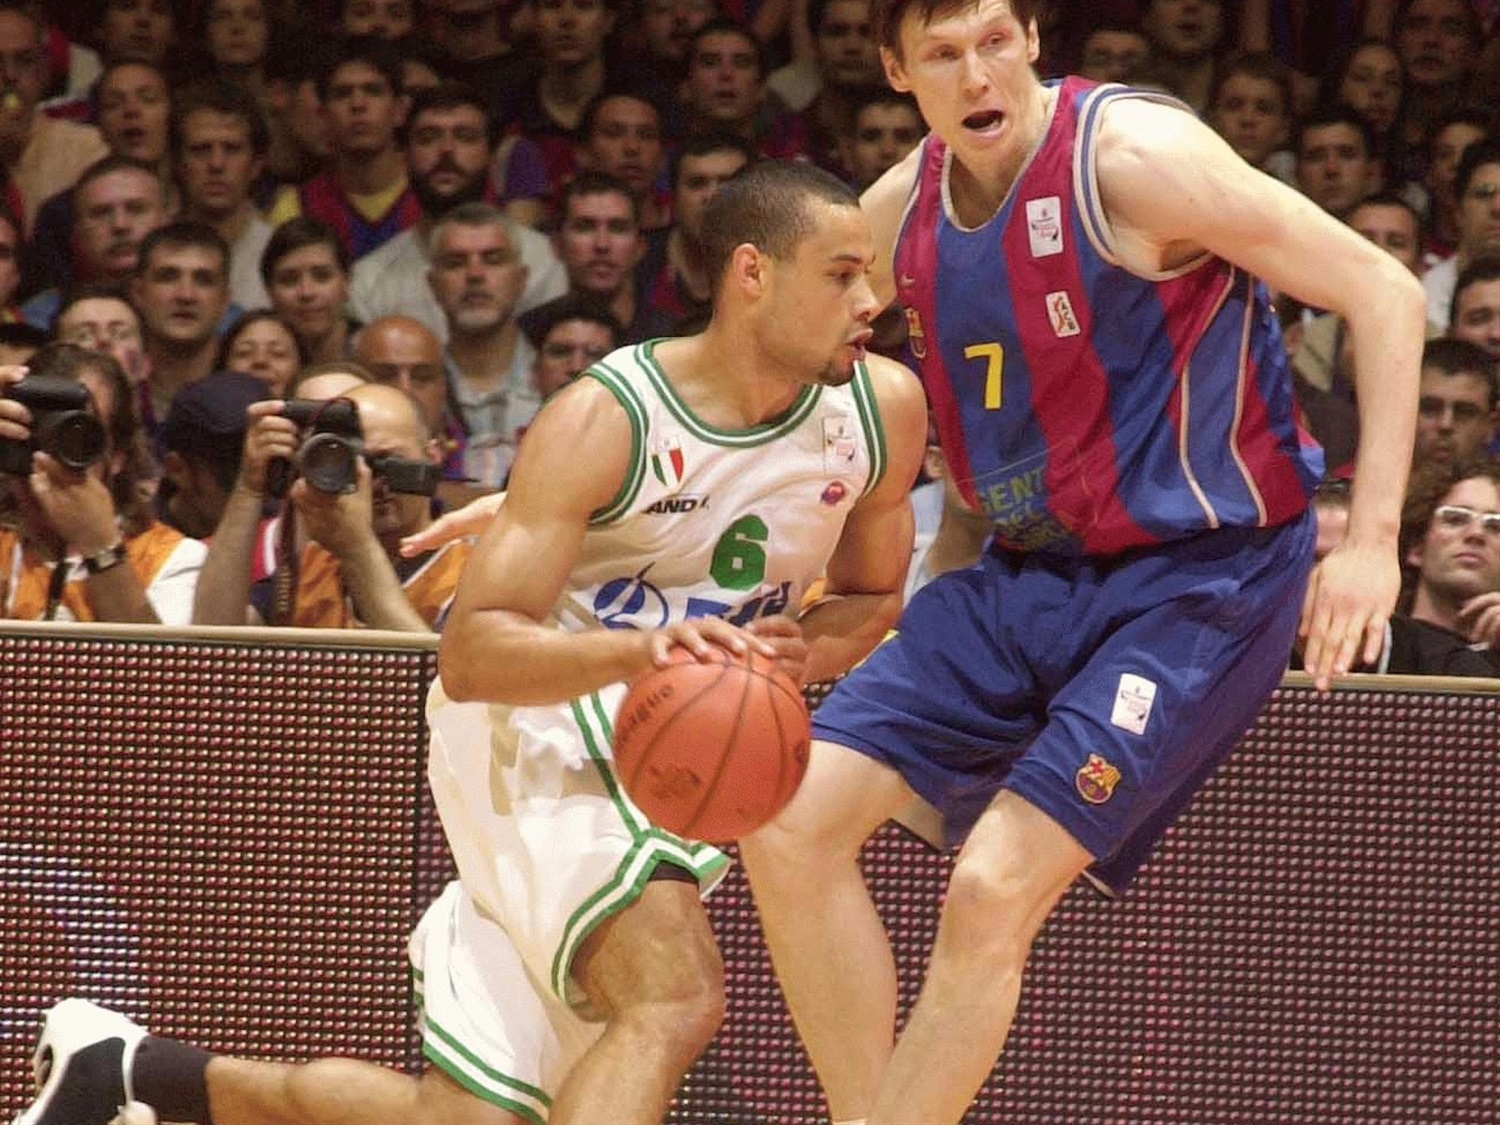 Trajan Langdon - Benetton Basket - Final Four Barcelona 2003 - EB02